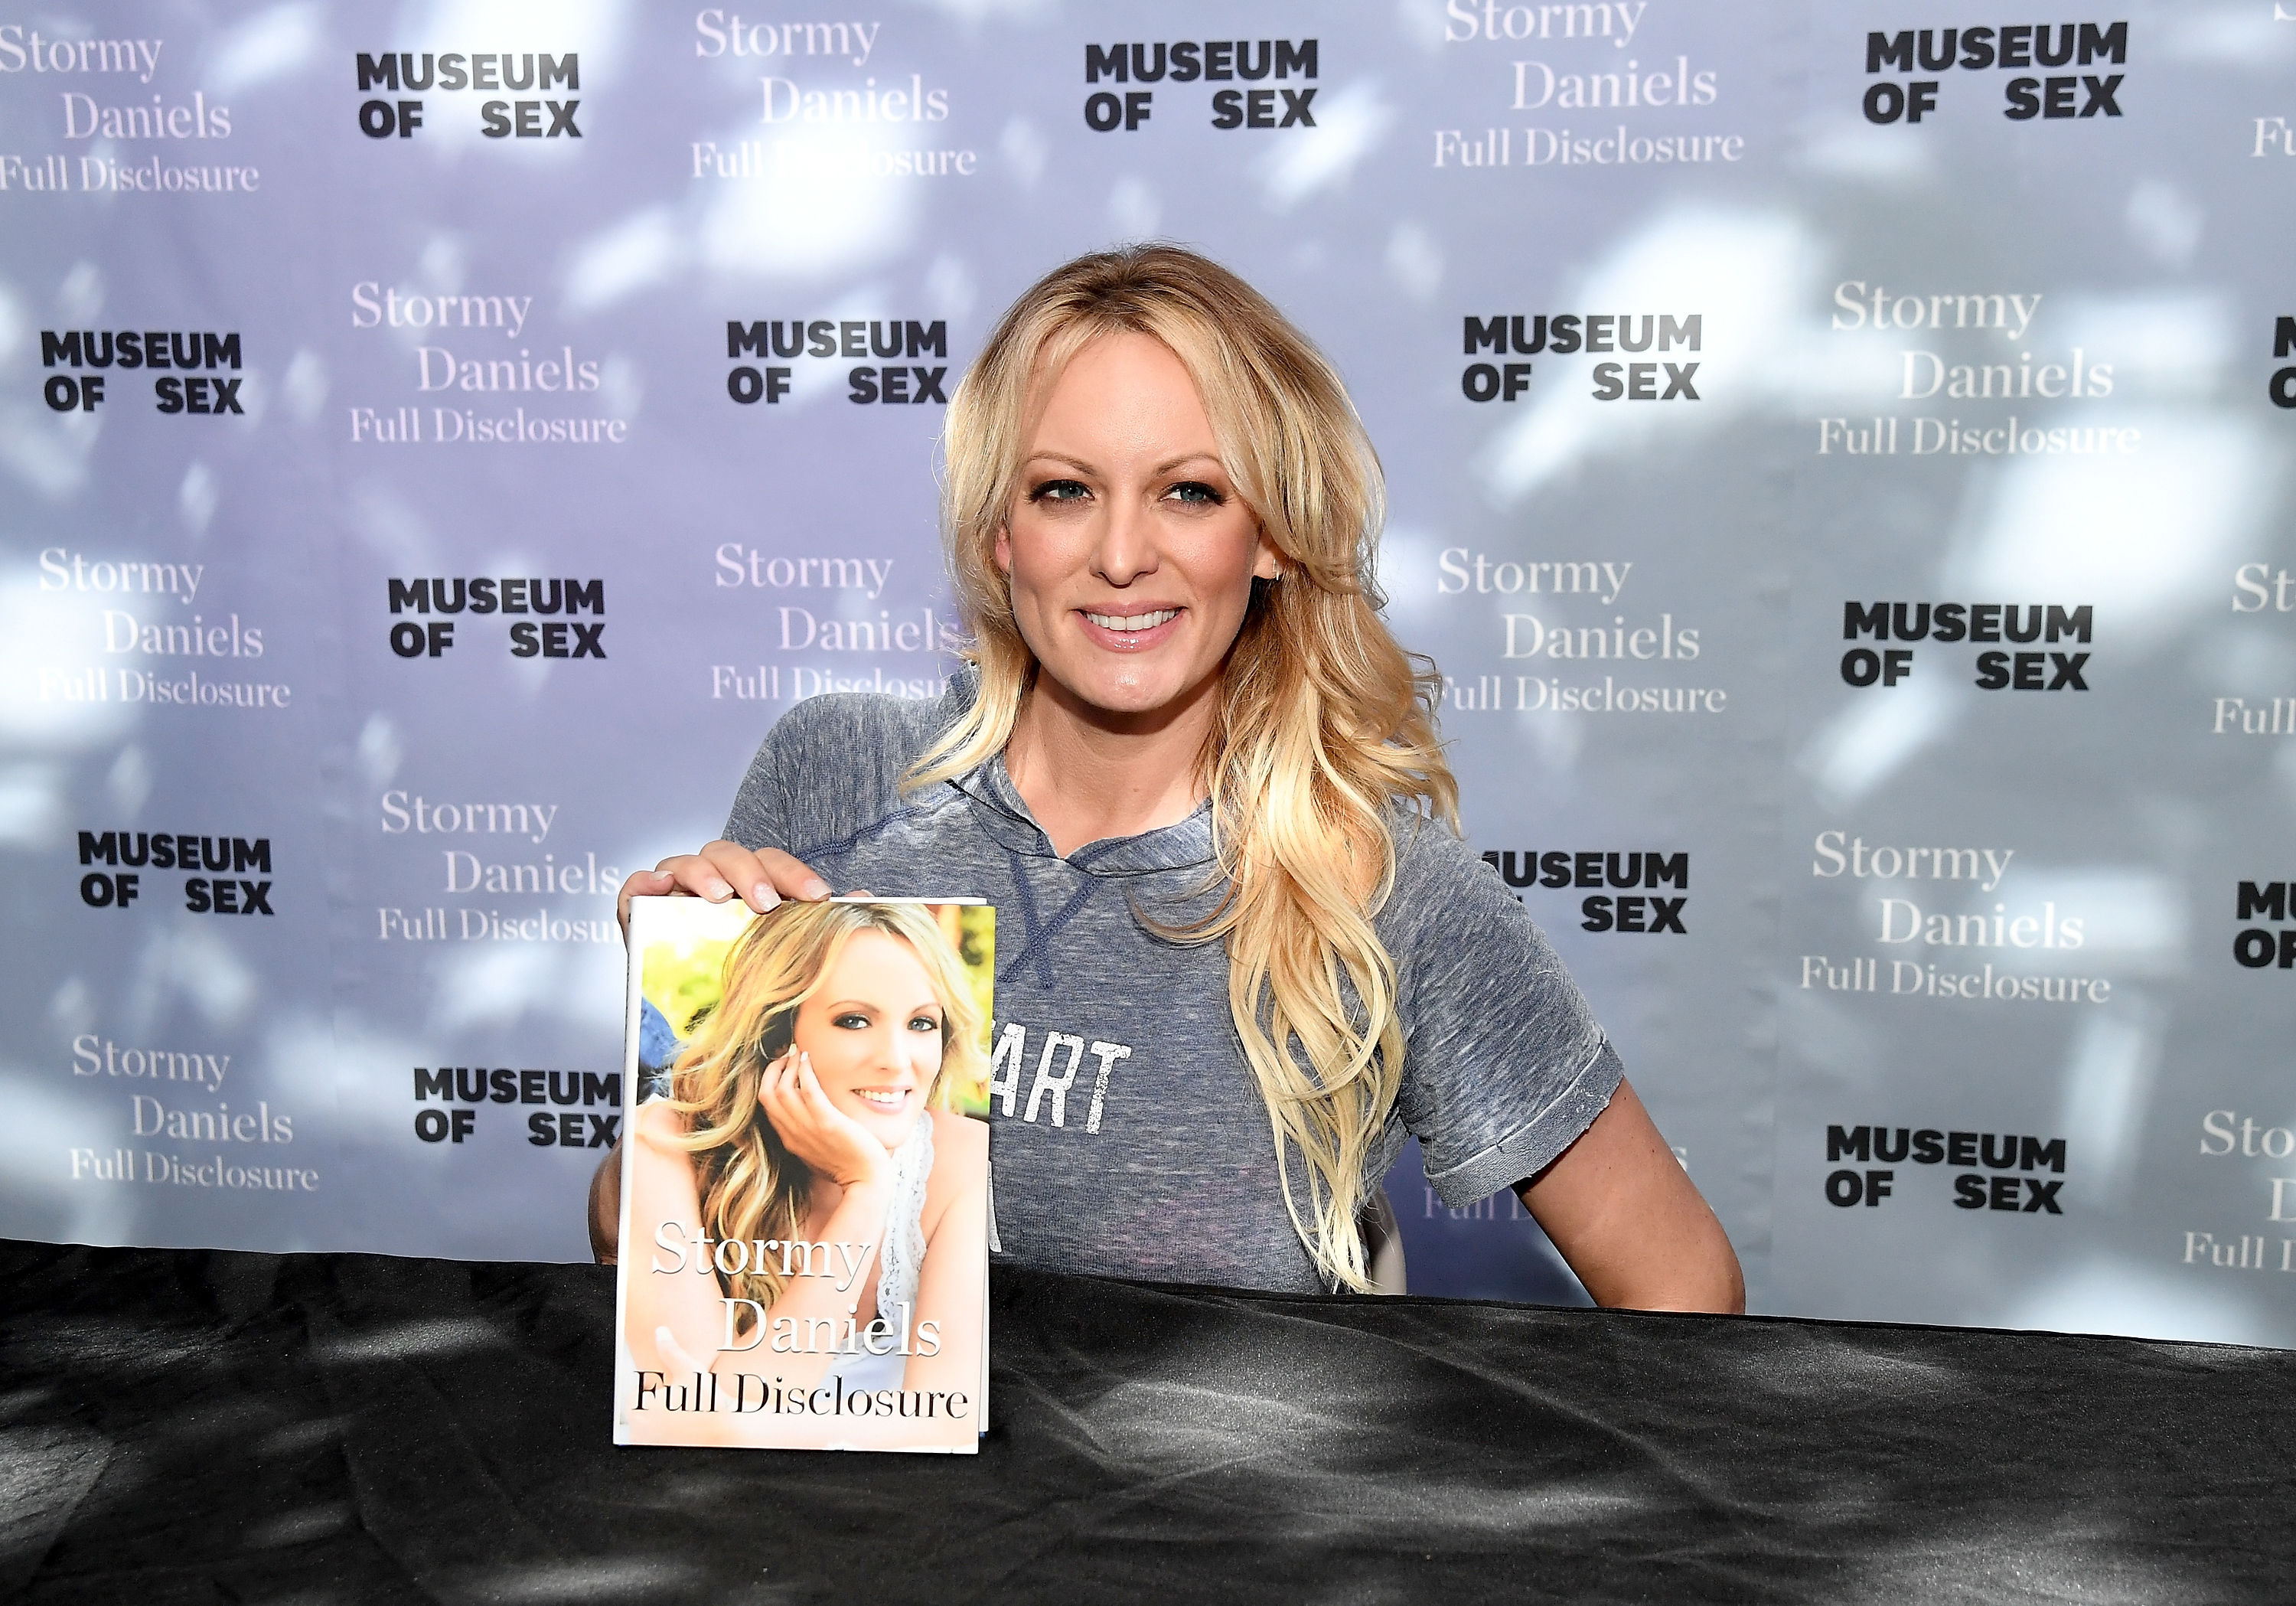 "Stormy Daniels with her new book ""Full Disclosure"" at New York City's Museum of Sex on October 8, 2018 (Nicholas Hunt/Getty Images)"